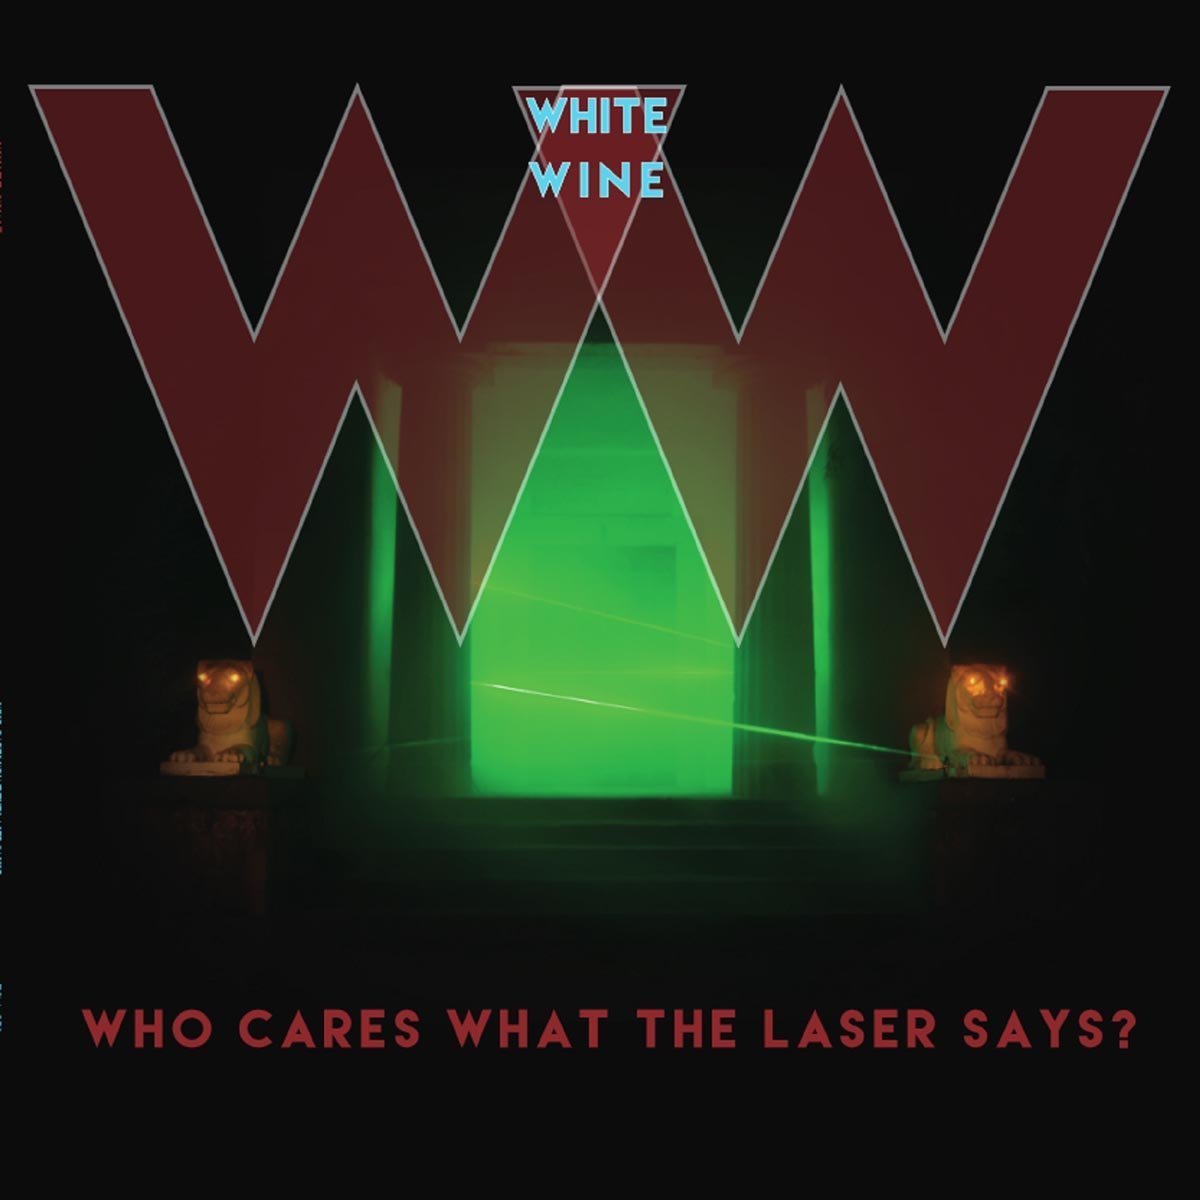 WHO CARES WHAT THE LASER SAYS